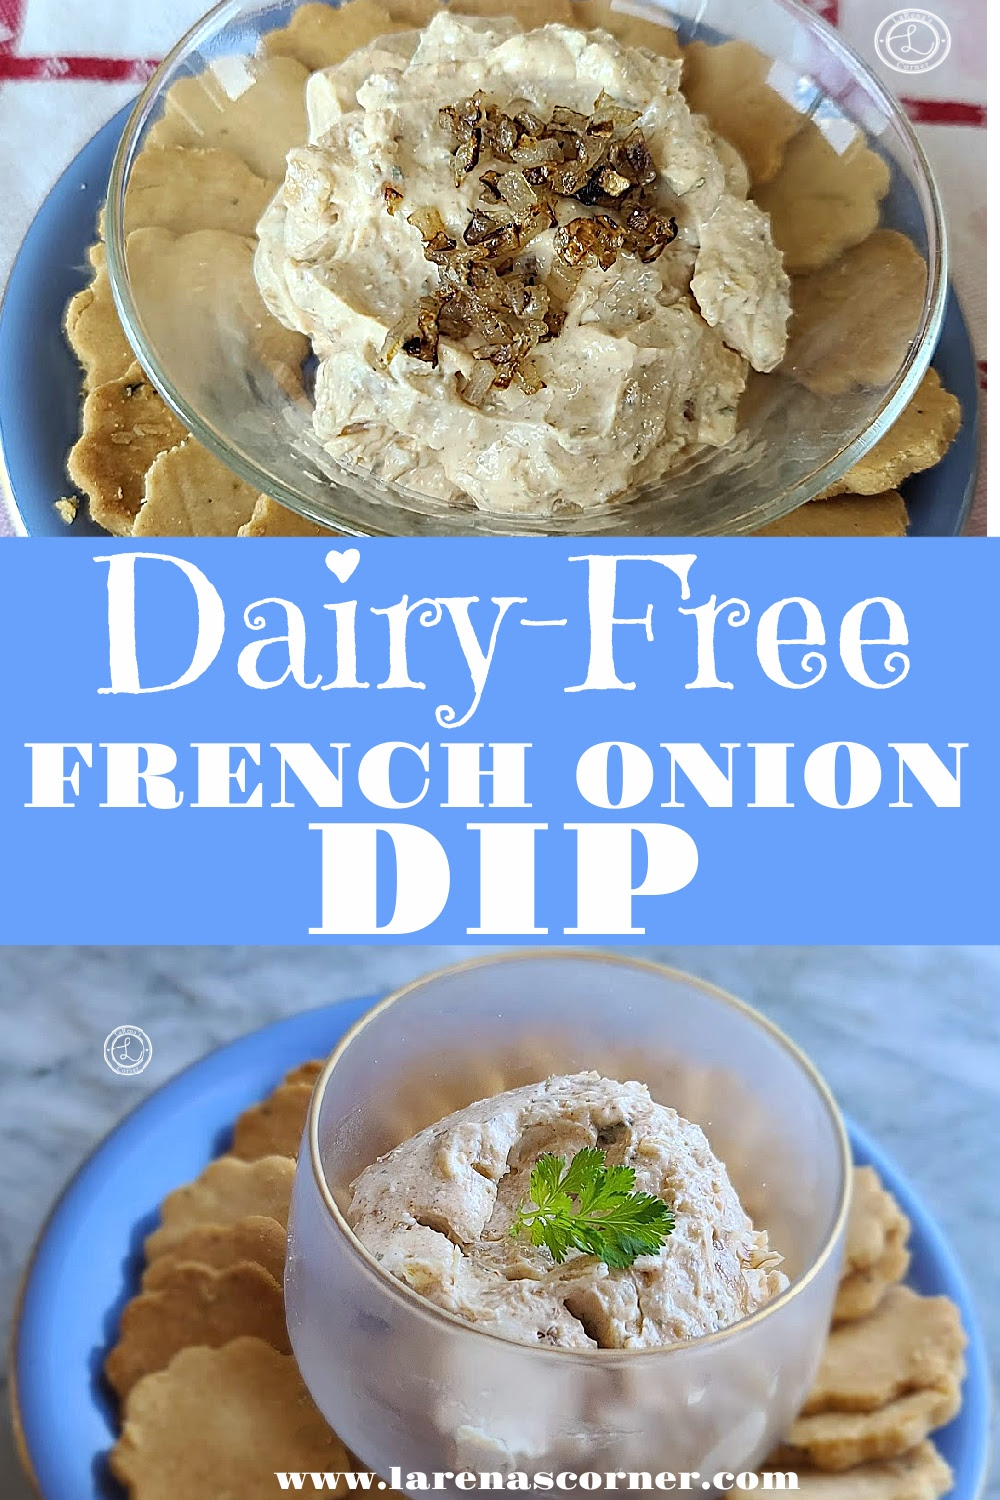 Dairy-Free French Onion Dip. Two pictures. Each picture has a plate of crackers with a small bowl of dip.